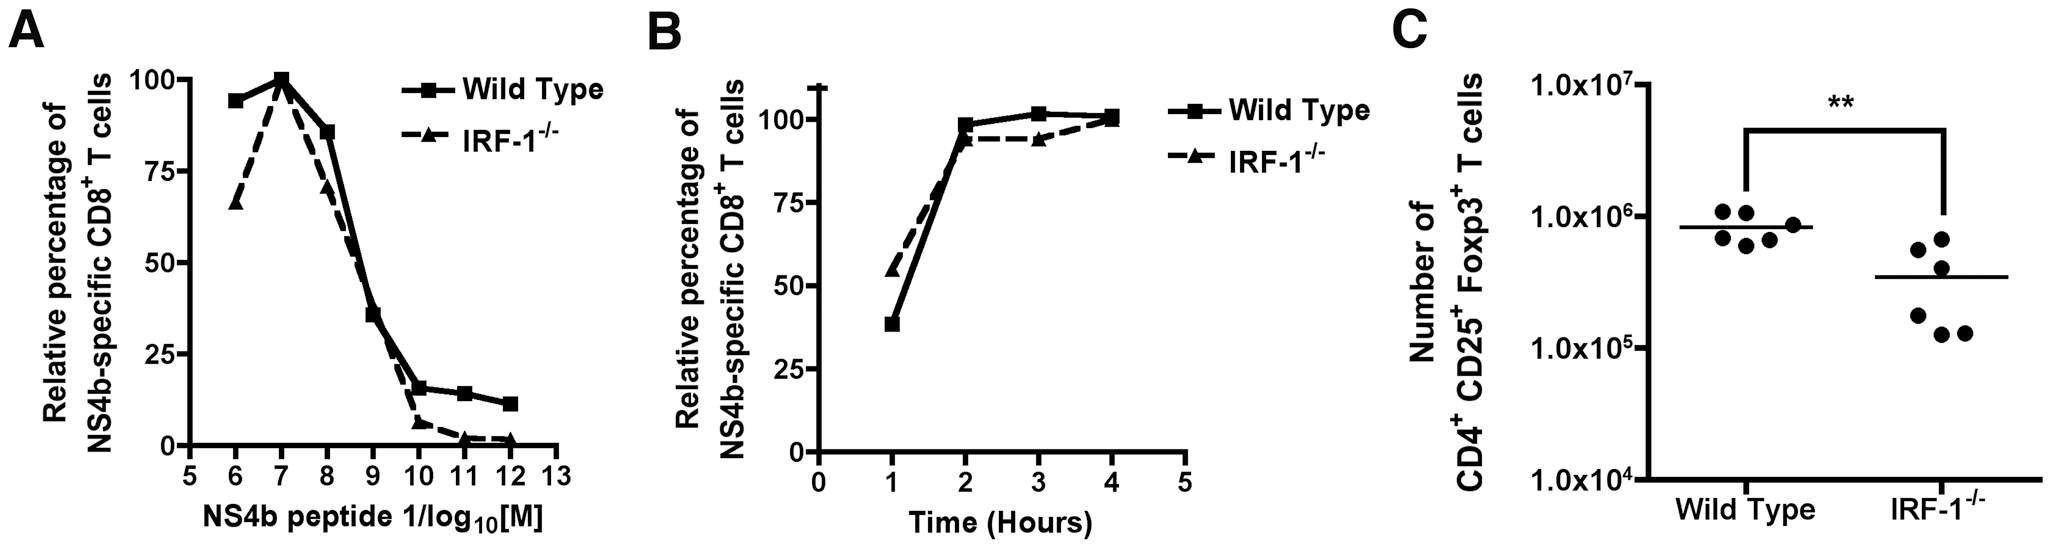 Mechanism of selective expansion of WNV-specific CD8<sup>+</sup> T cells in <i>IRF-1</i><sup>-/-</sup> mice.